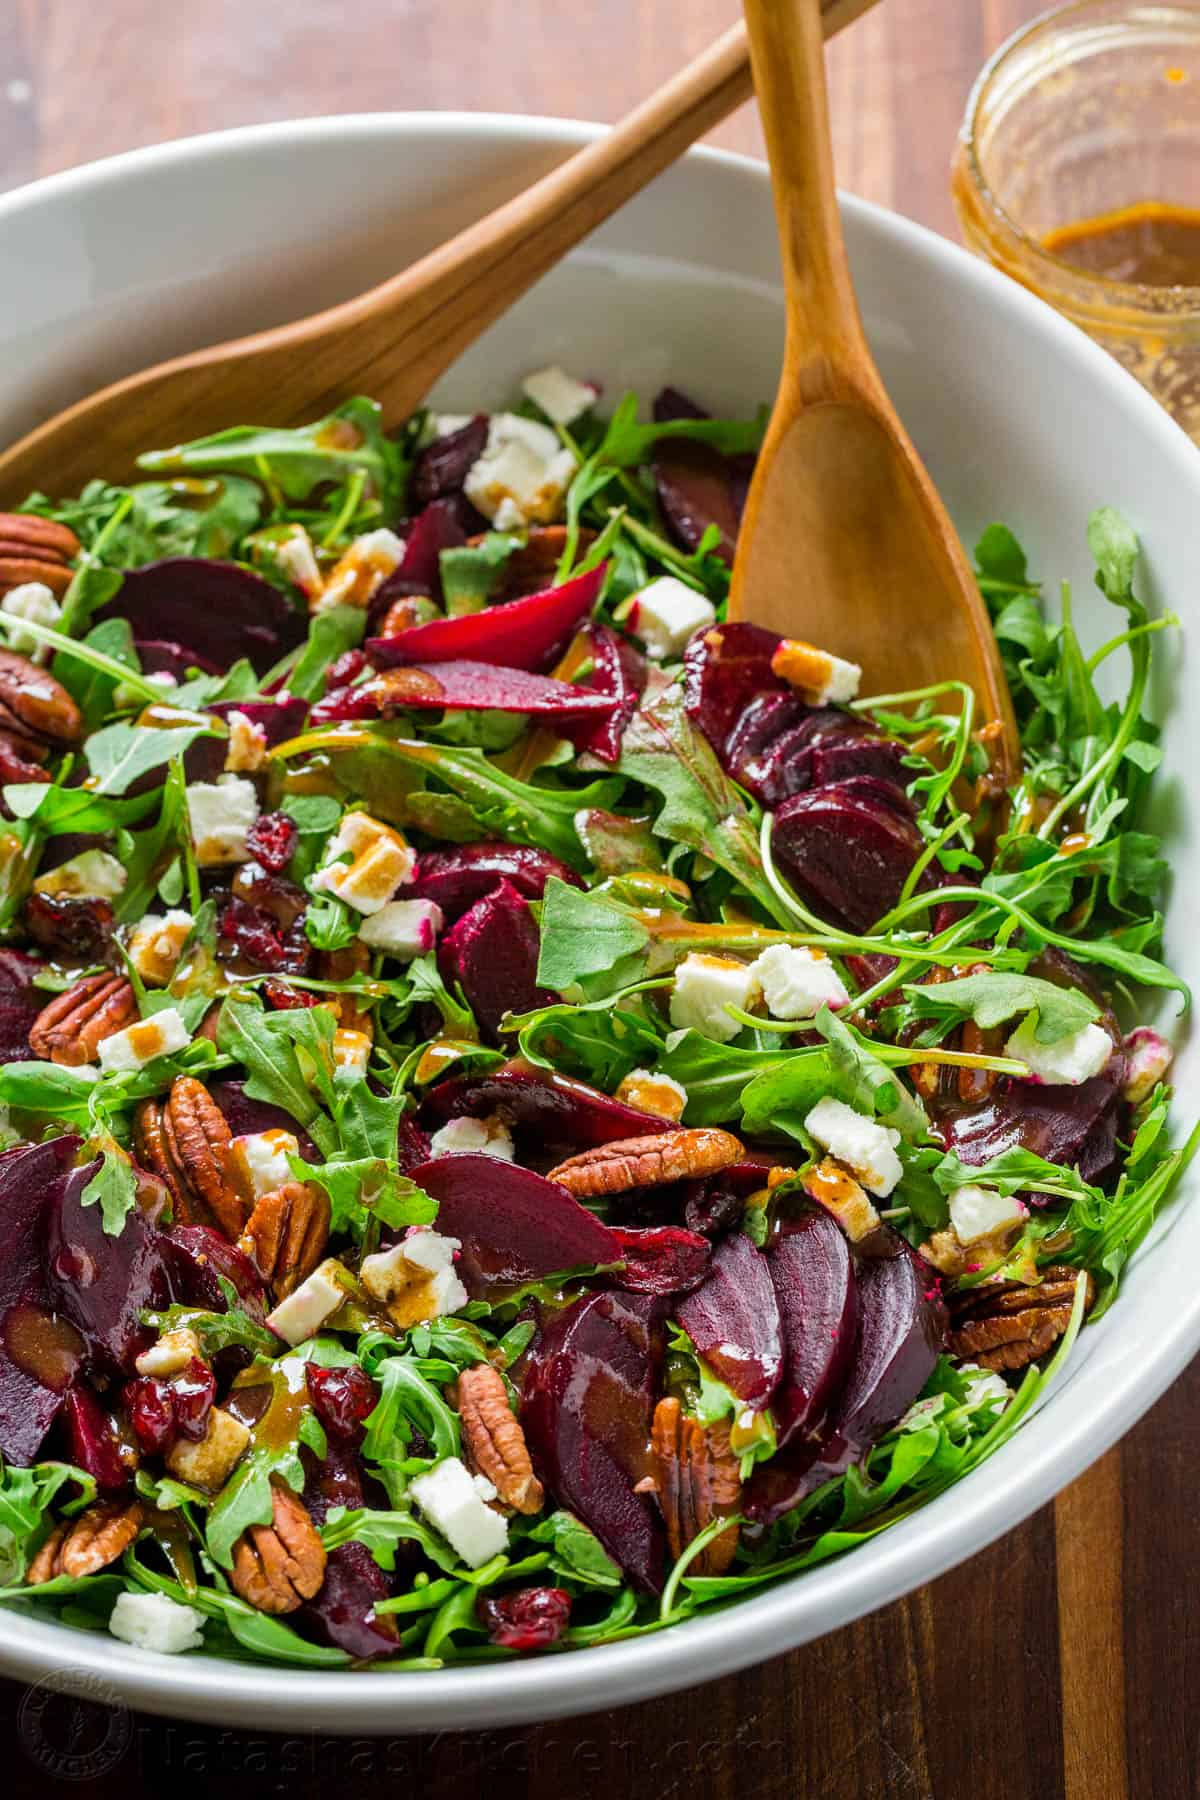 What it is possible to prepare salads from Kirieshki